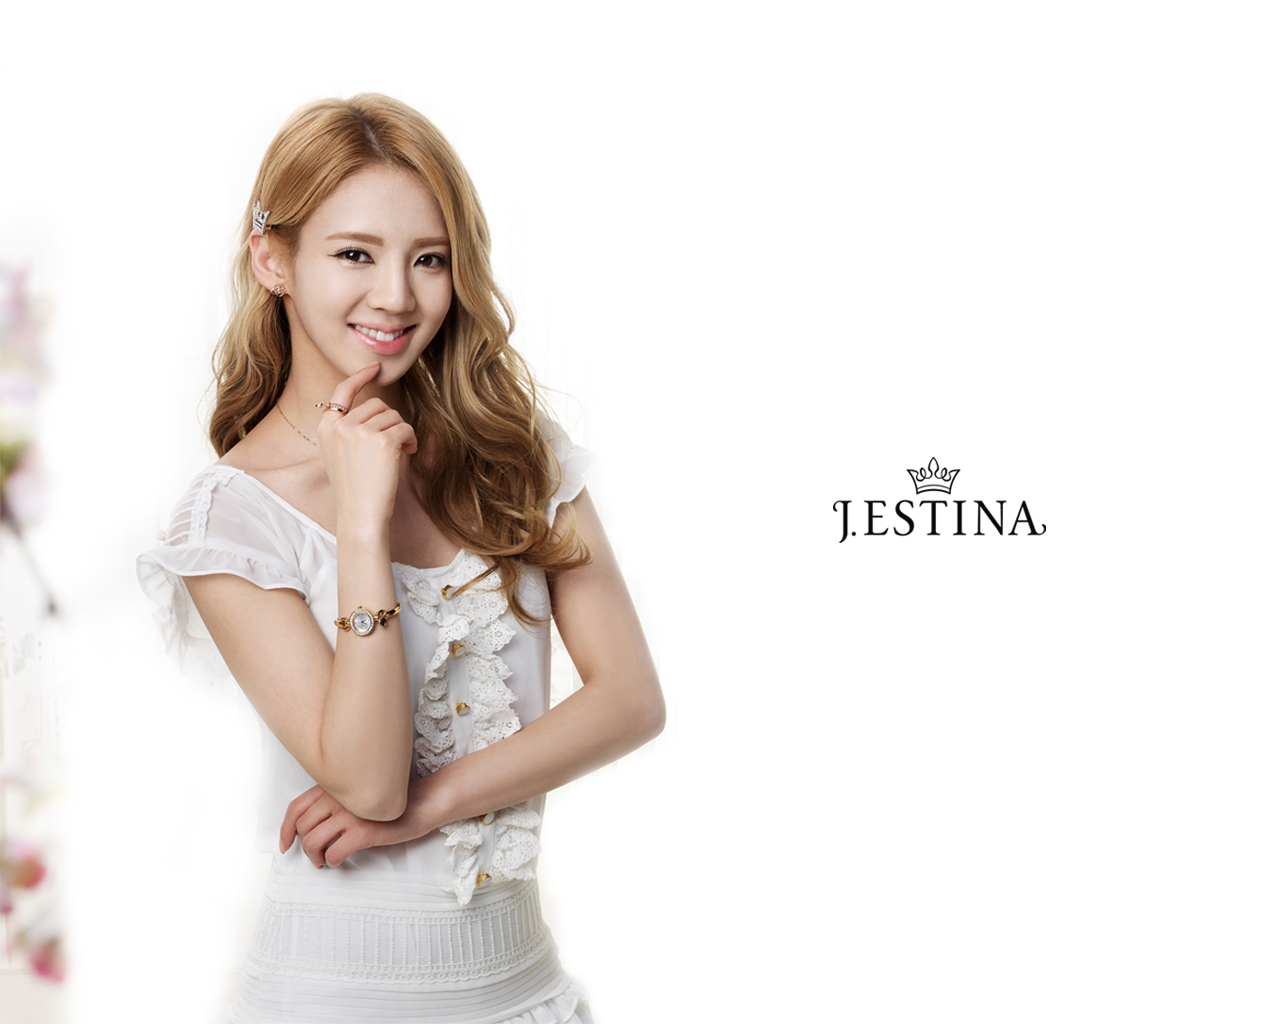 Girls generation snsd girls generation hyoyeon j estina